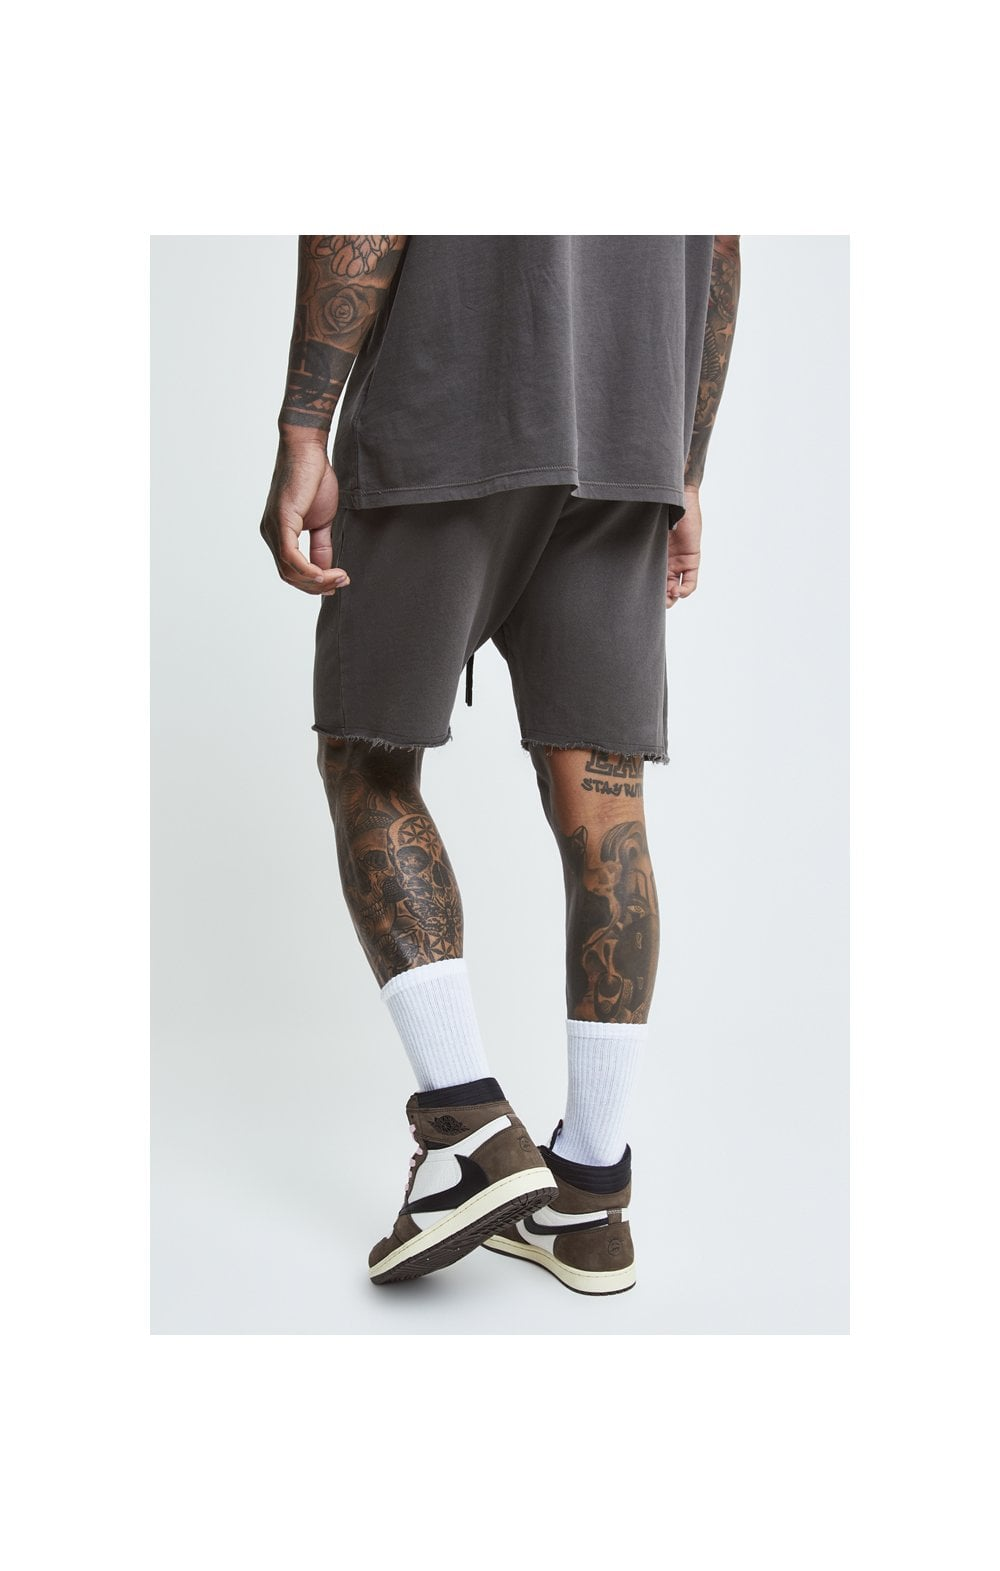 SikSilk X Steve Aoki Relaxed Shorts - Washed Grey (2)